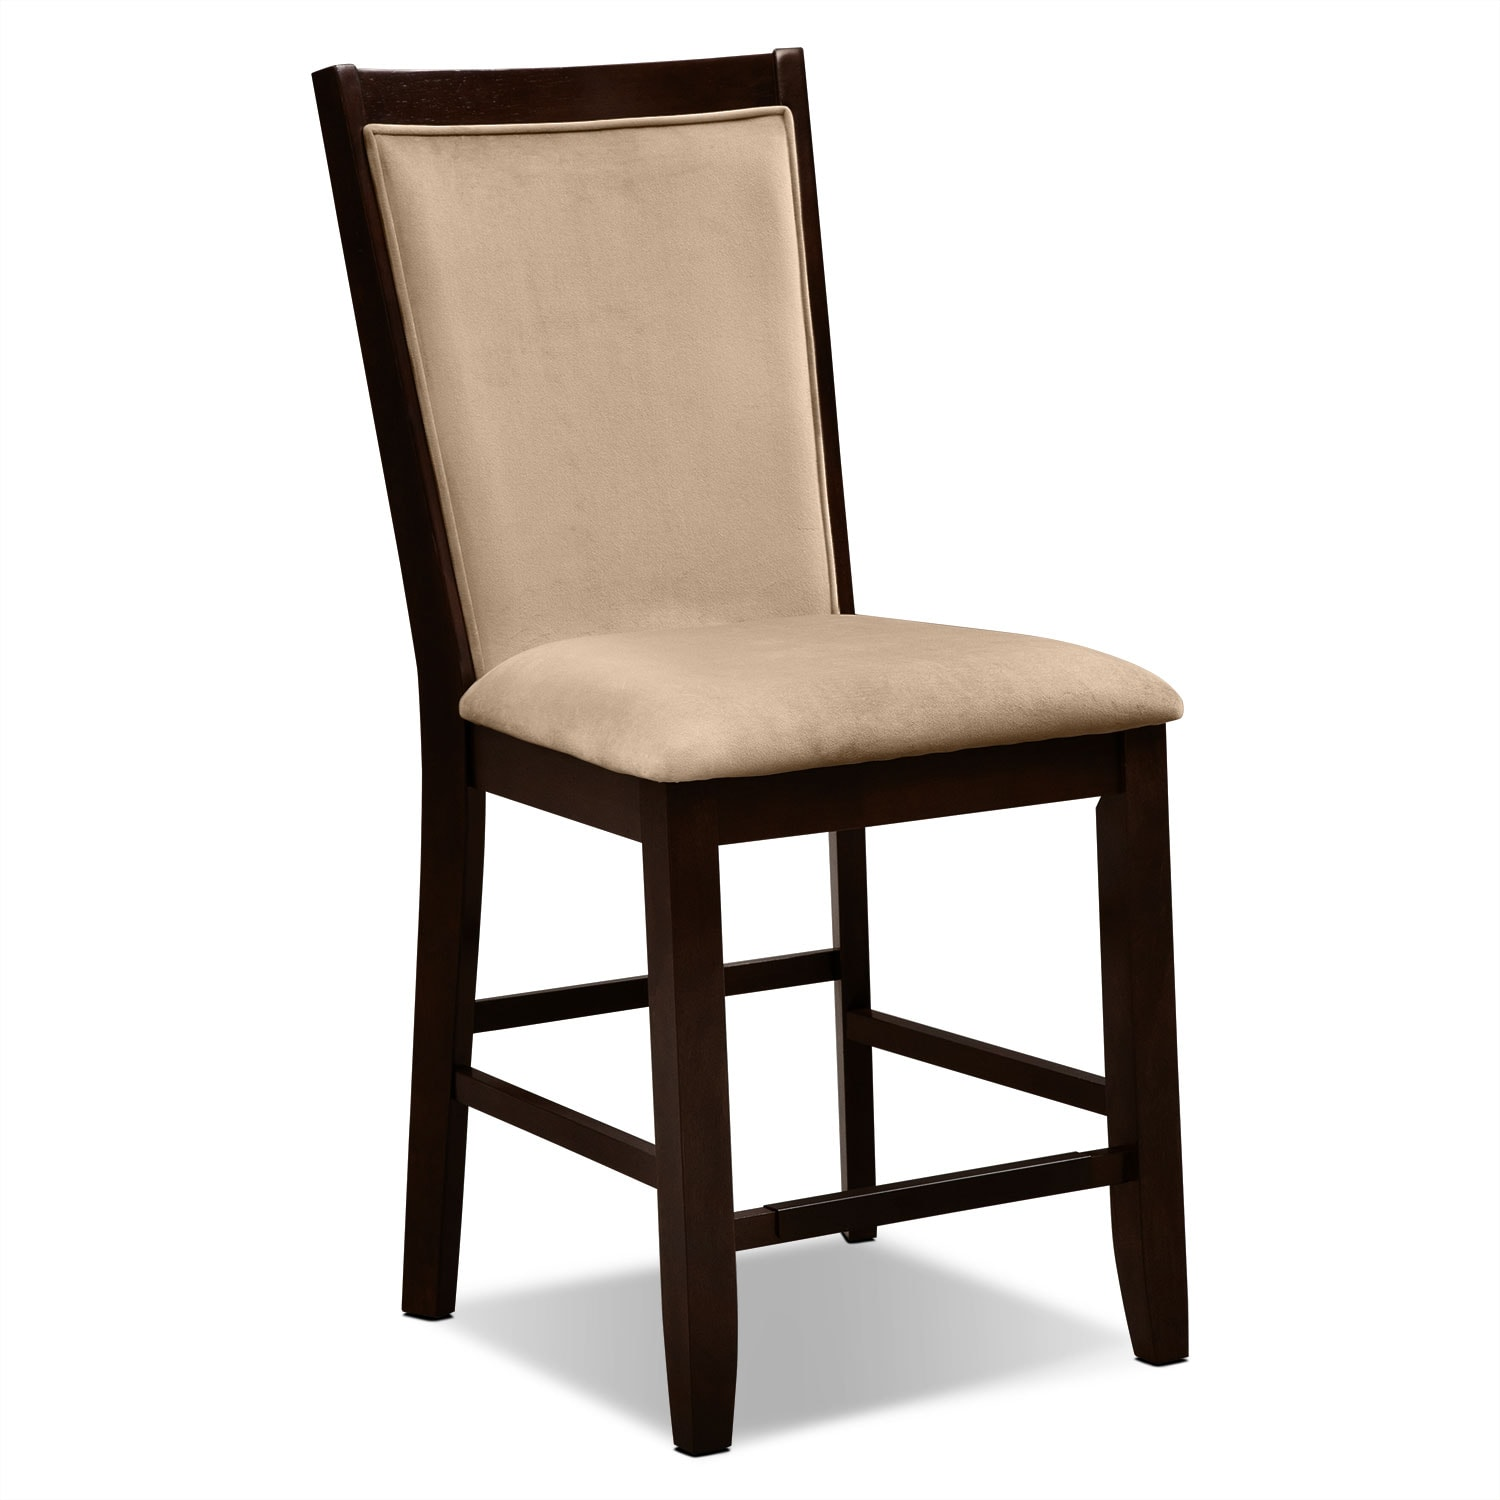 Paragon Counter-Height Chair - Camel